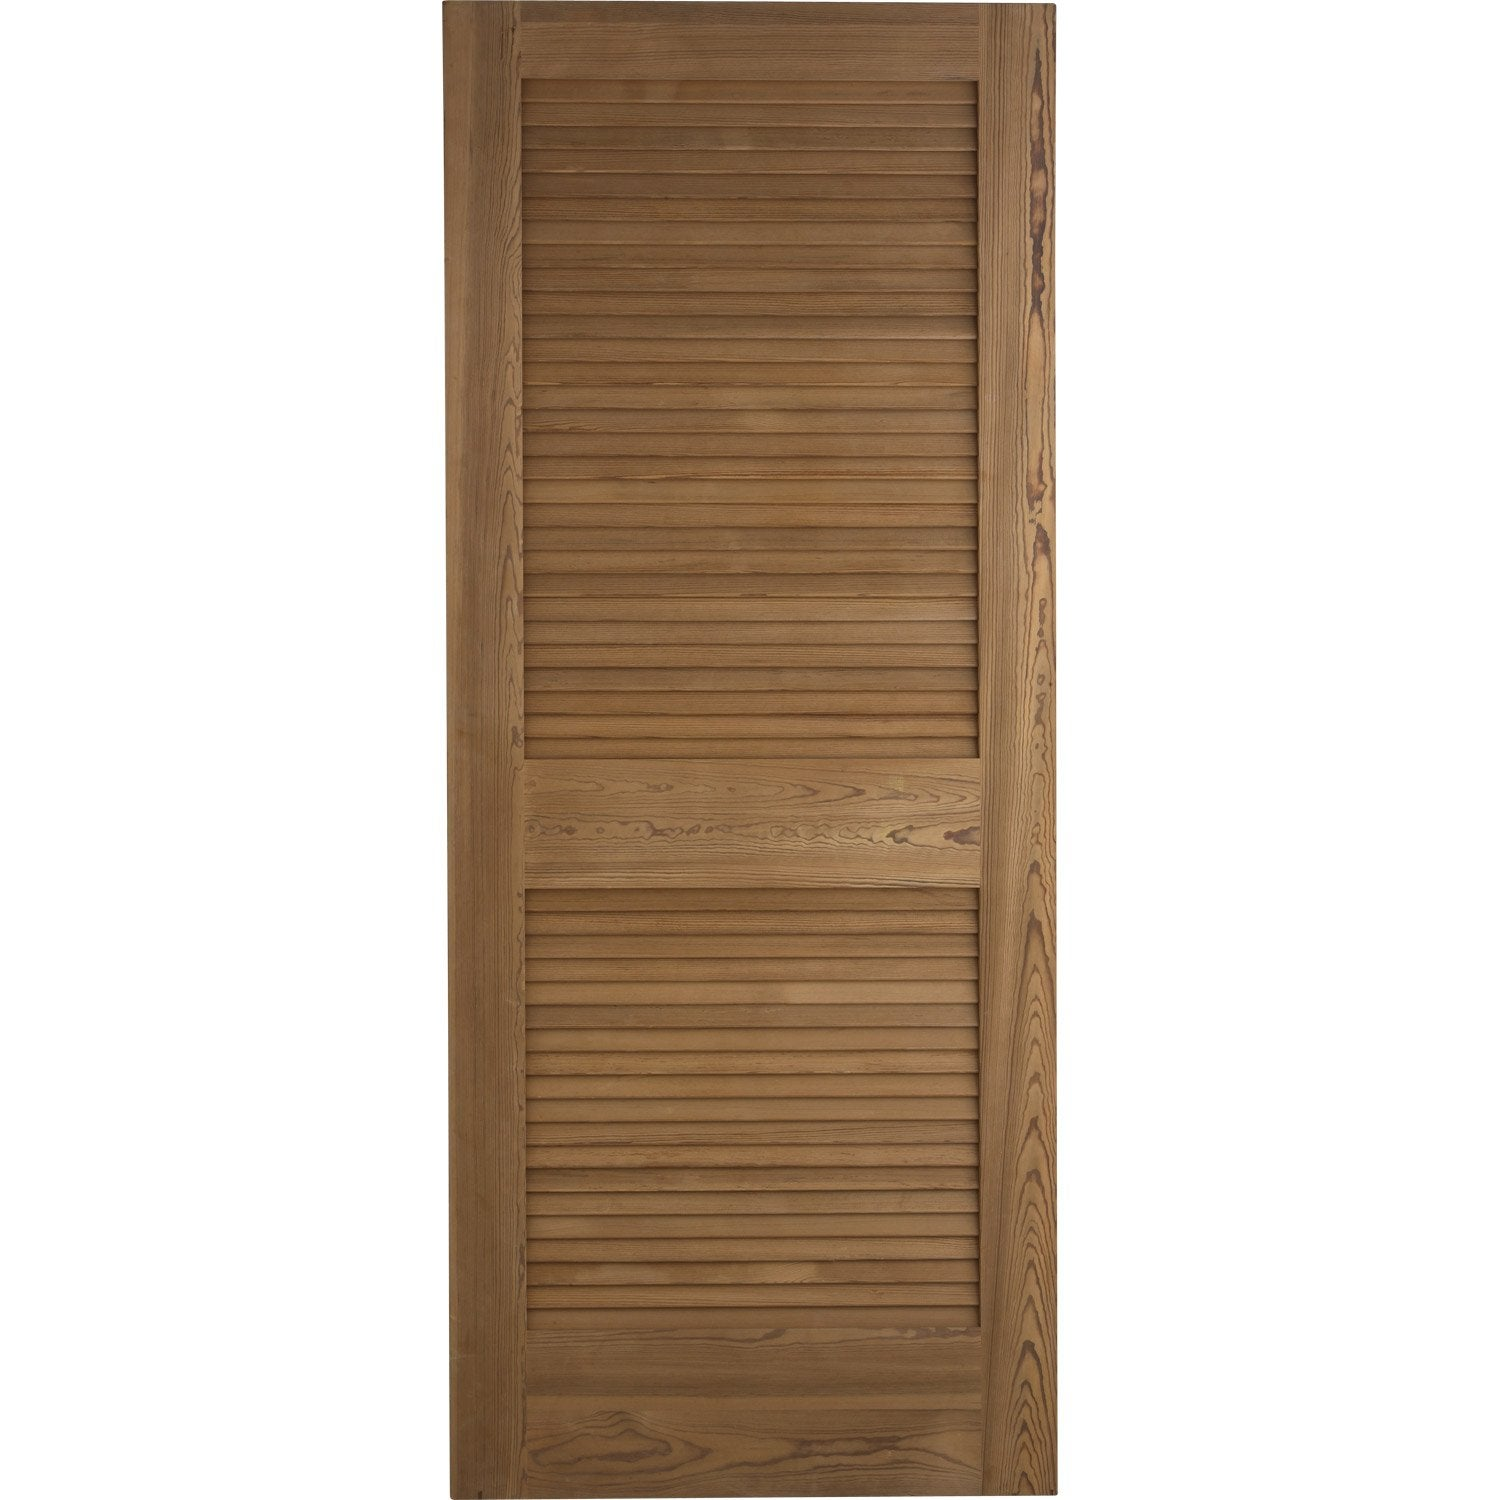 Porte coulissante pin plaqu marron java artens 204 x 73 for Porte bois exterieur leroy merlin